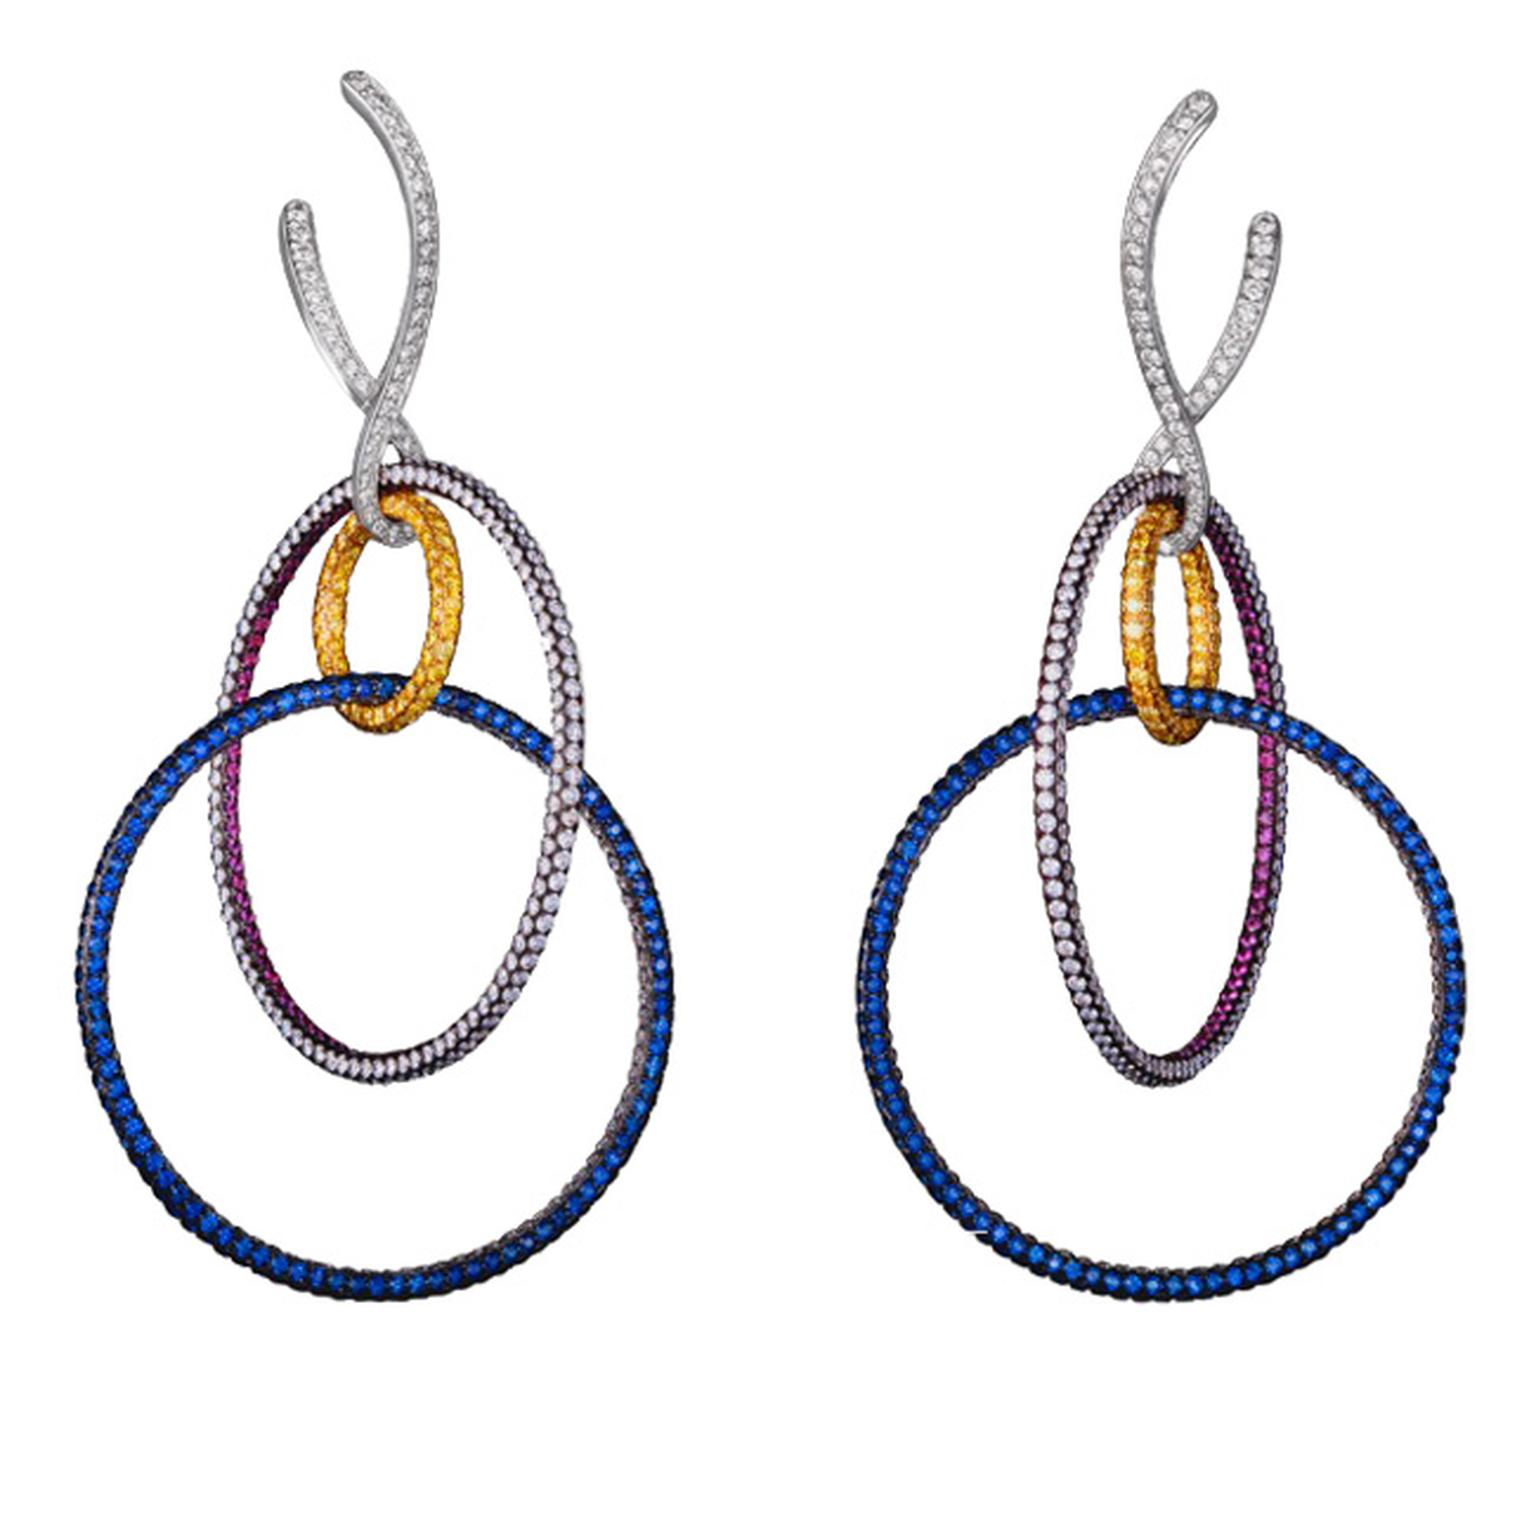 Carnet -earrings -ZOOM